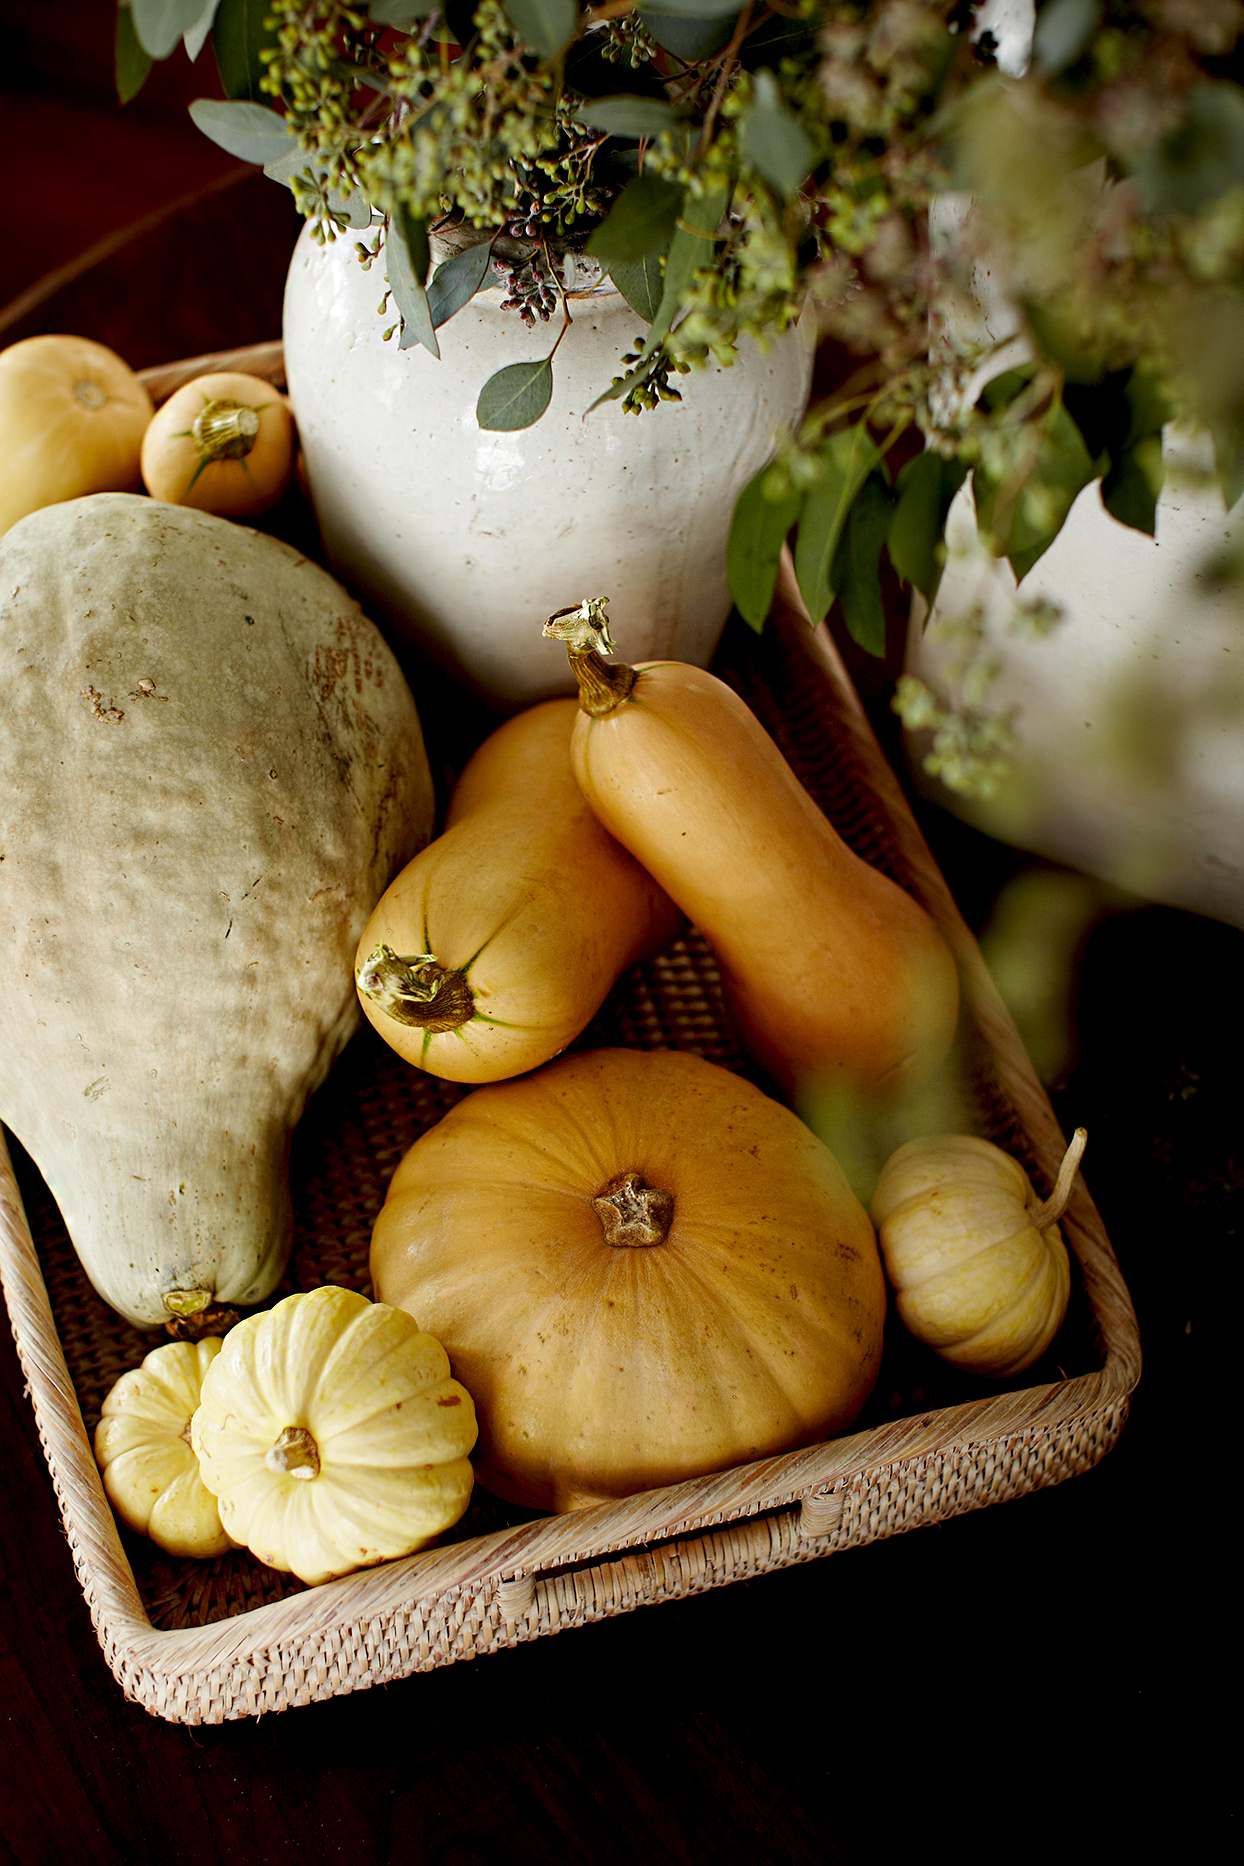 Basket holding gourds and pumpkins